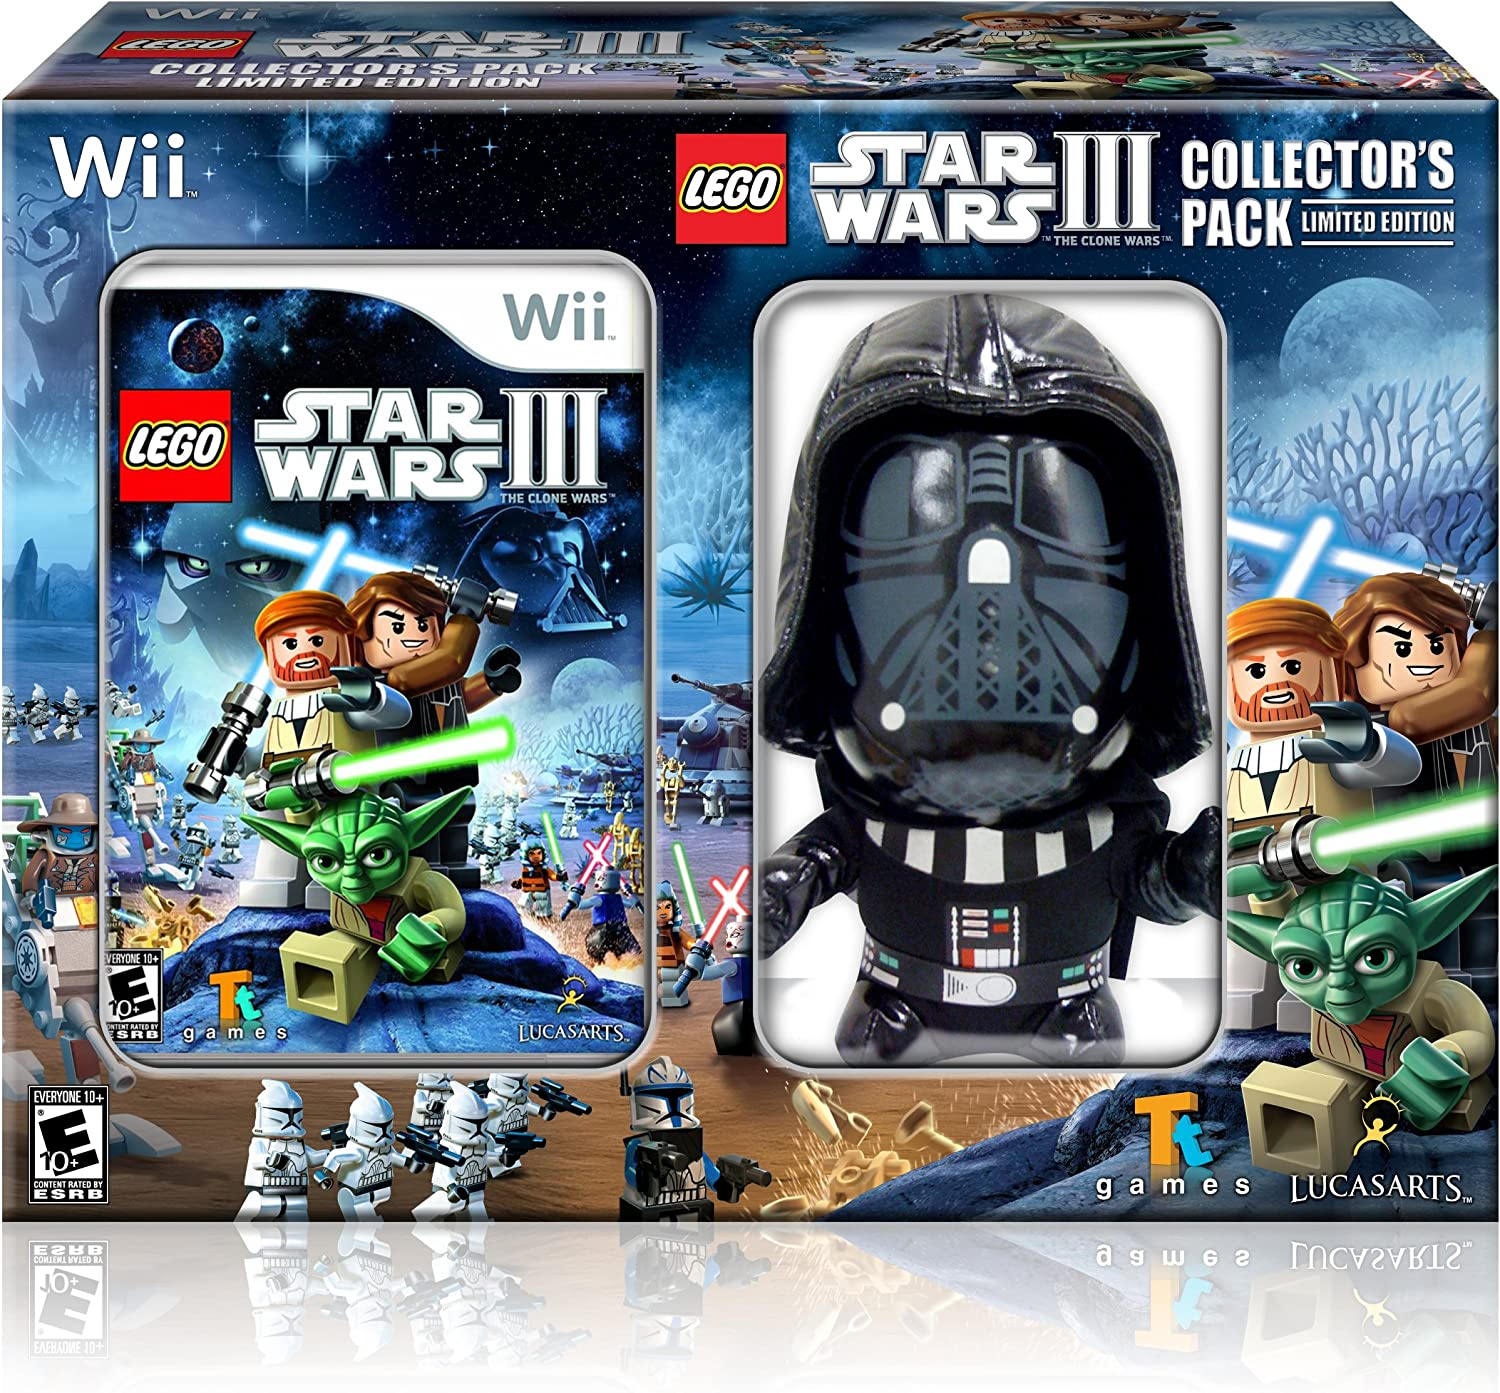 Lego star wars iii the clone wars vehicle info - Amazon Com Lego Star Wars Iii The Clone Wars Wii Game With Darth Vader Plush Video Games